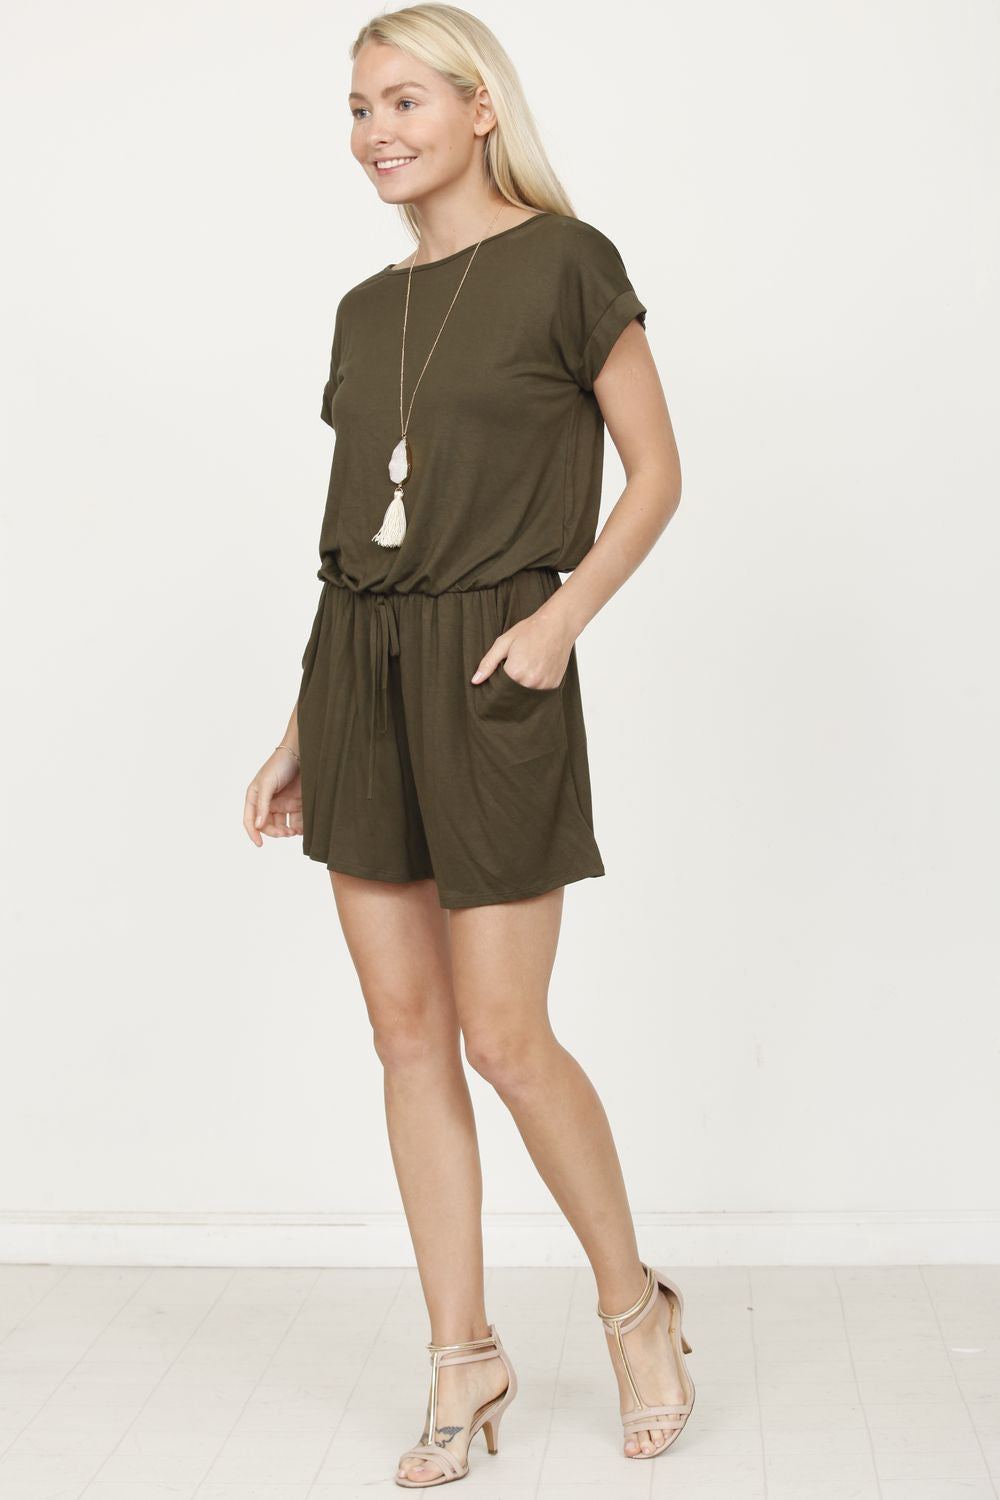 Solid Olive Short Sleeve Romper